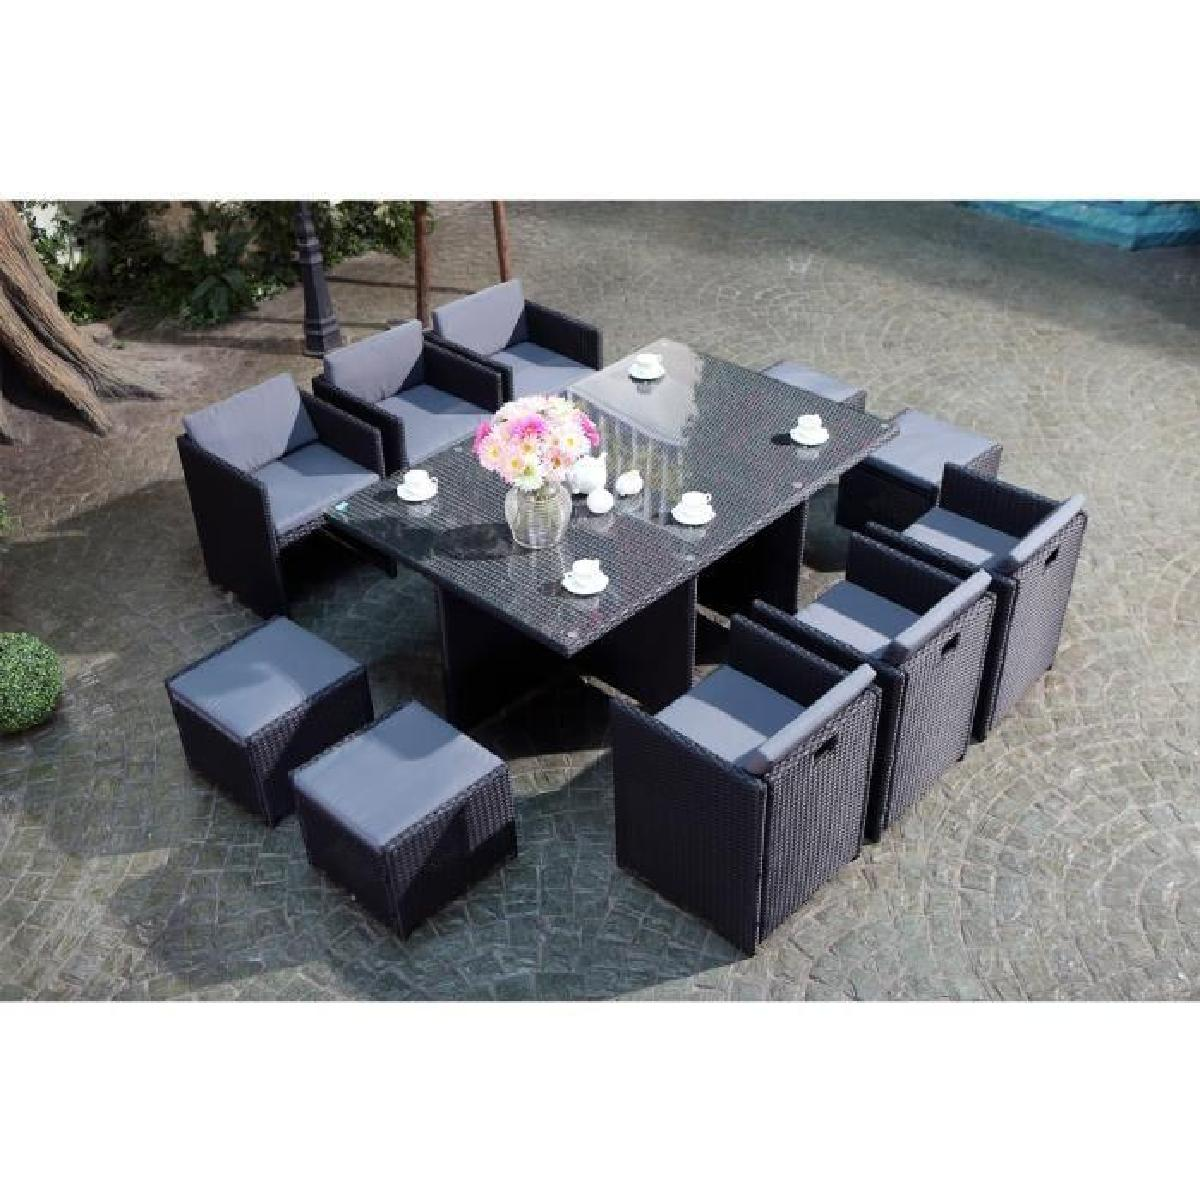 achat salon de jardin pas cher 15 id es de d coration int rieure french decor. Black Bedroom Furniture Sets. Home Design Ideas